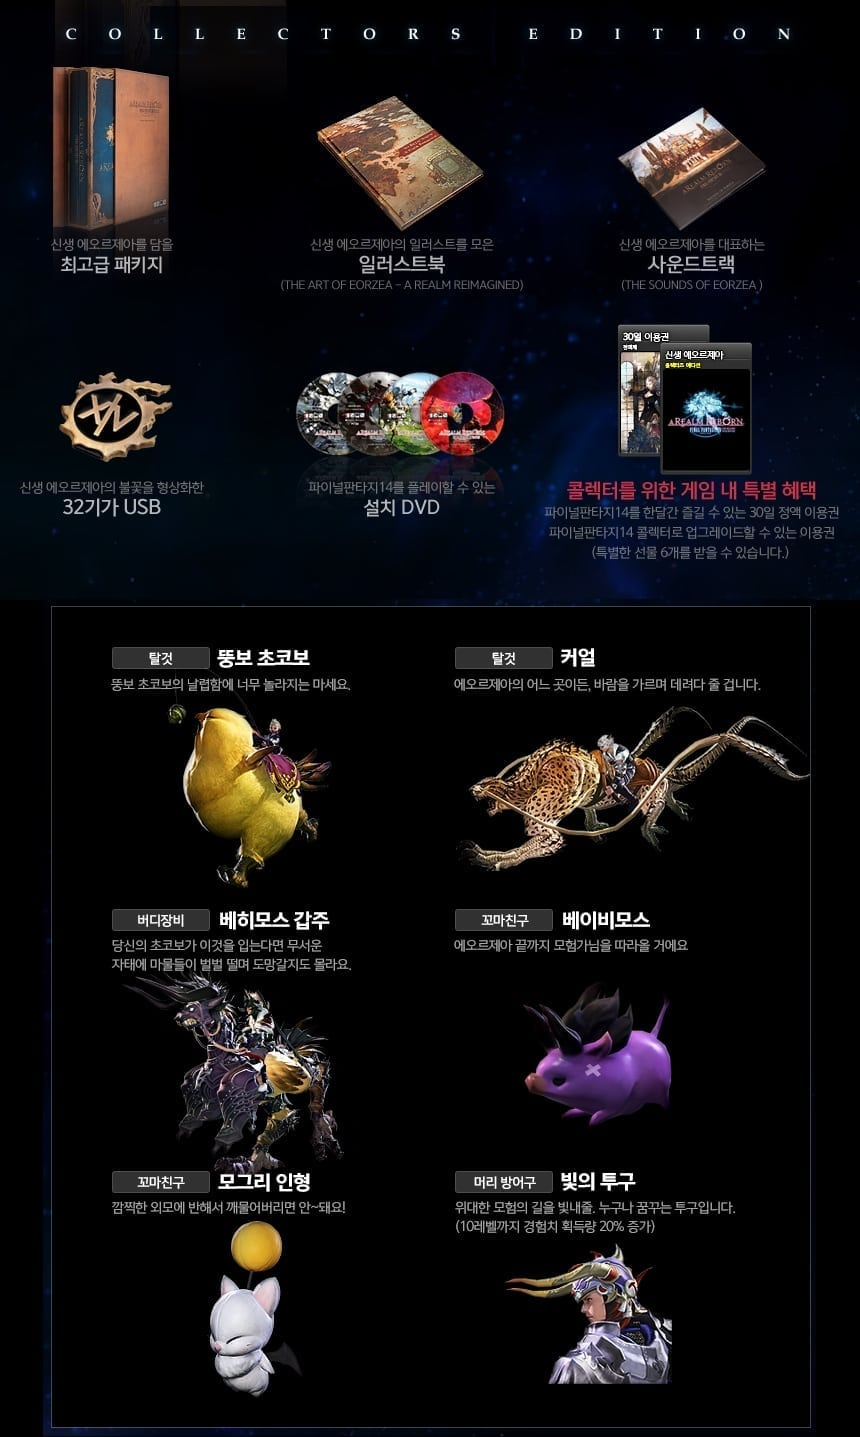 Final Fantasy XIV Korea - Collector's Edition